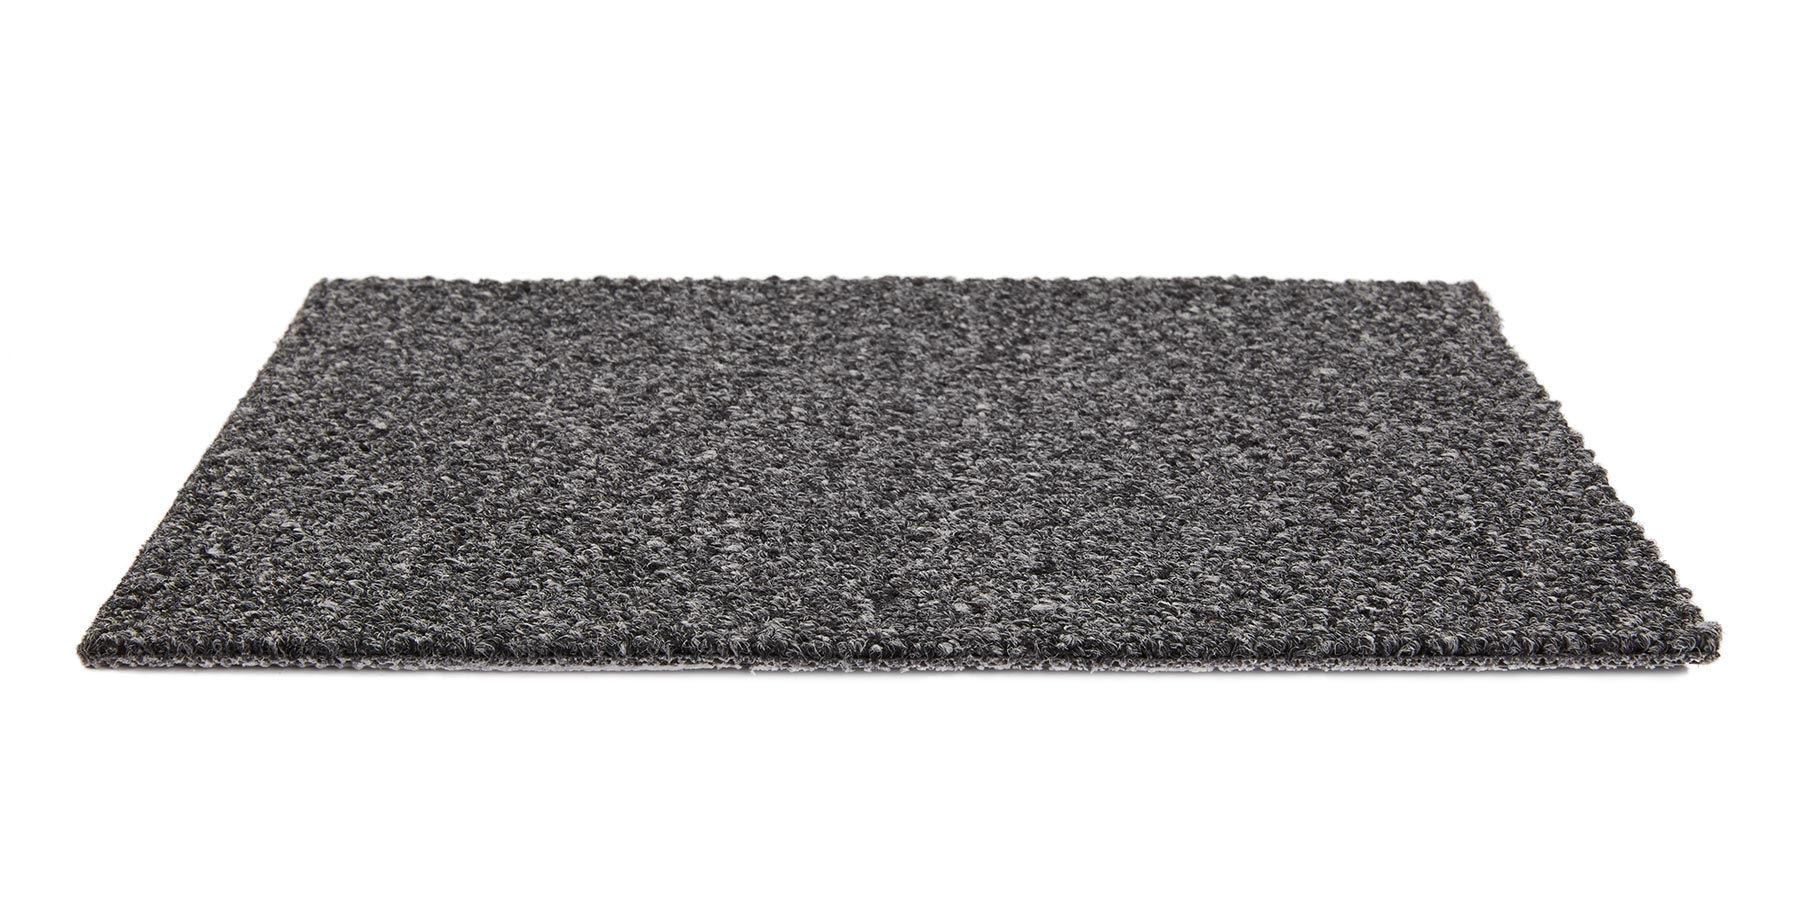 Tenbrooke II Black Sable Carpet